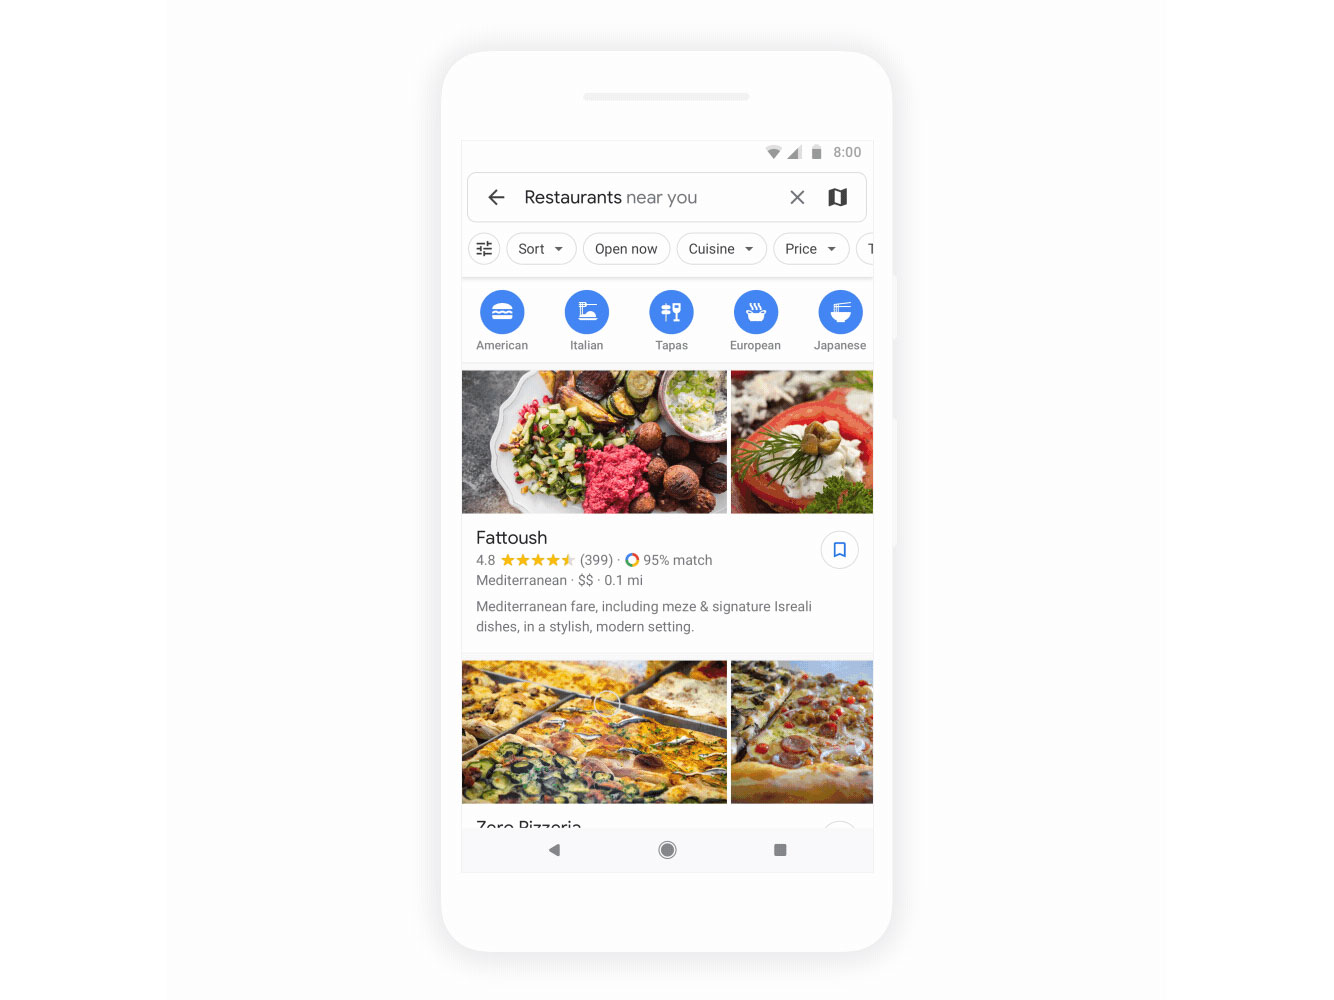 The Latest Google Maps Update Could Make It Your Go-To ... on googie maps, goolge maps, gogole maps, topographic maps, msn maps, online maps, road map usa states maps, amazon fire phone maps, iphone maps, waze maps, bing maps, googlr maps, aerial maps, android maps, ipad maps, aeronautical maps, search maps, stanford university maps, microsoft maps, gppgle maps,